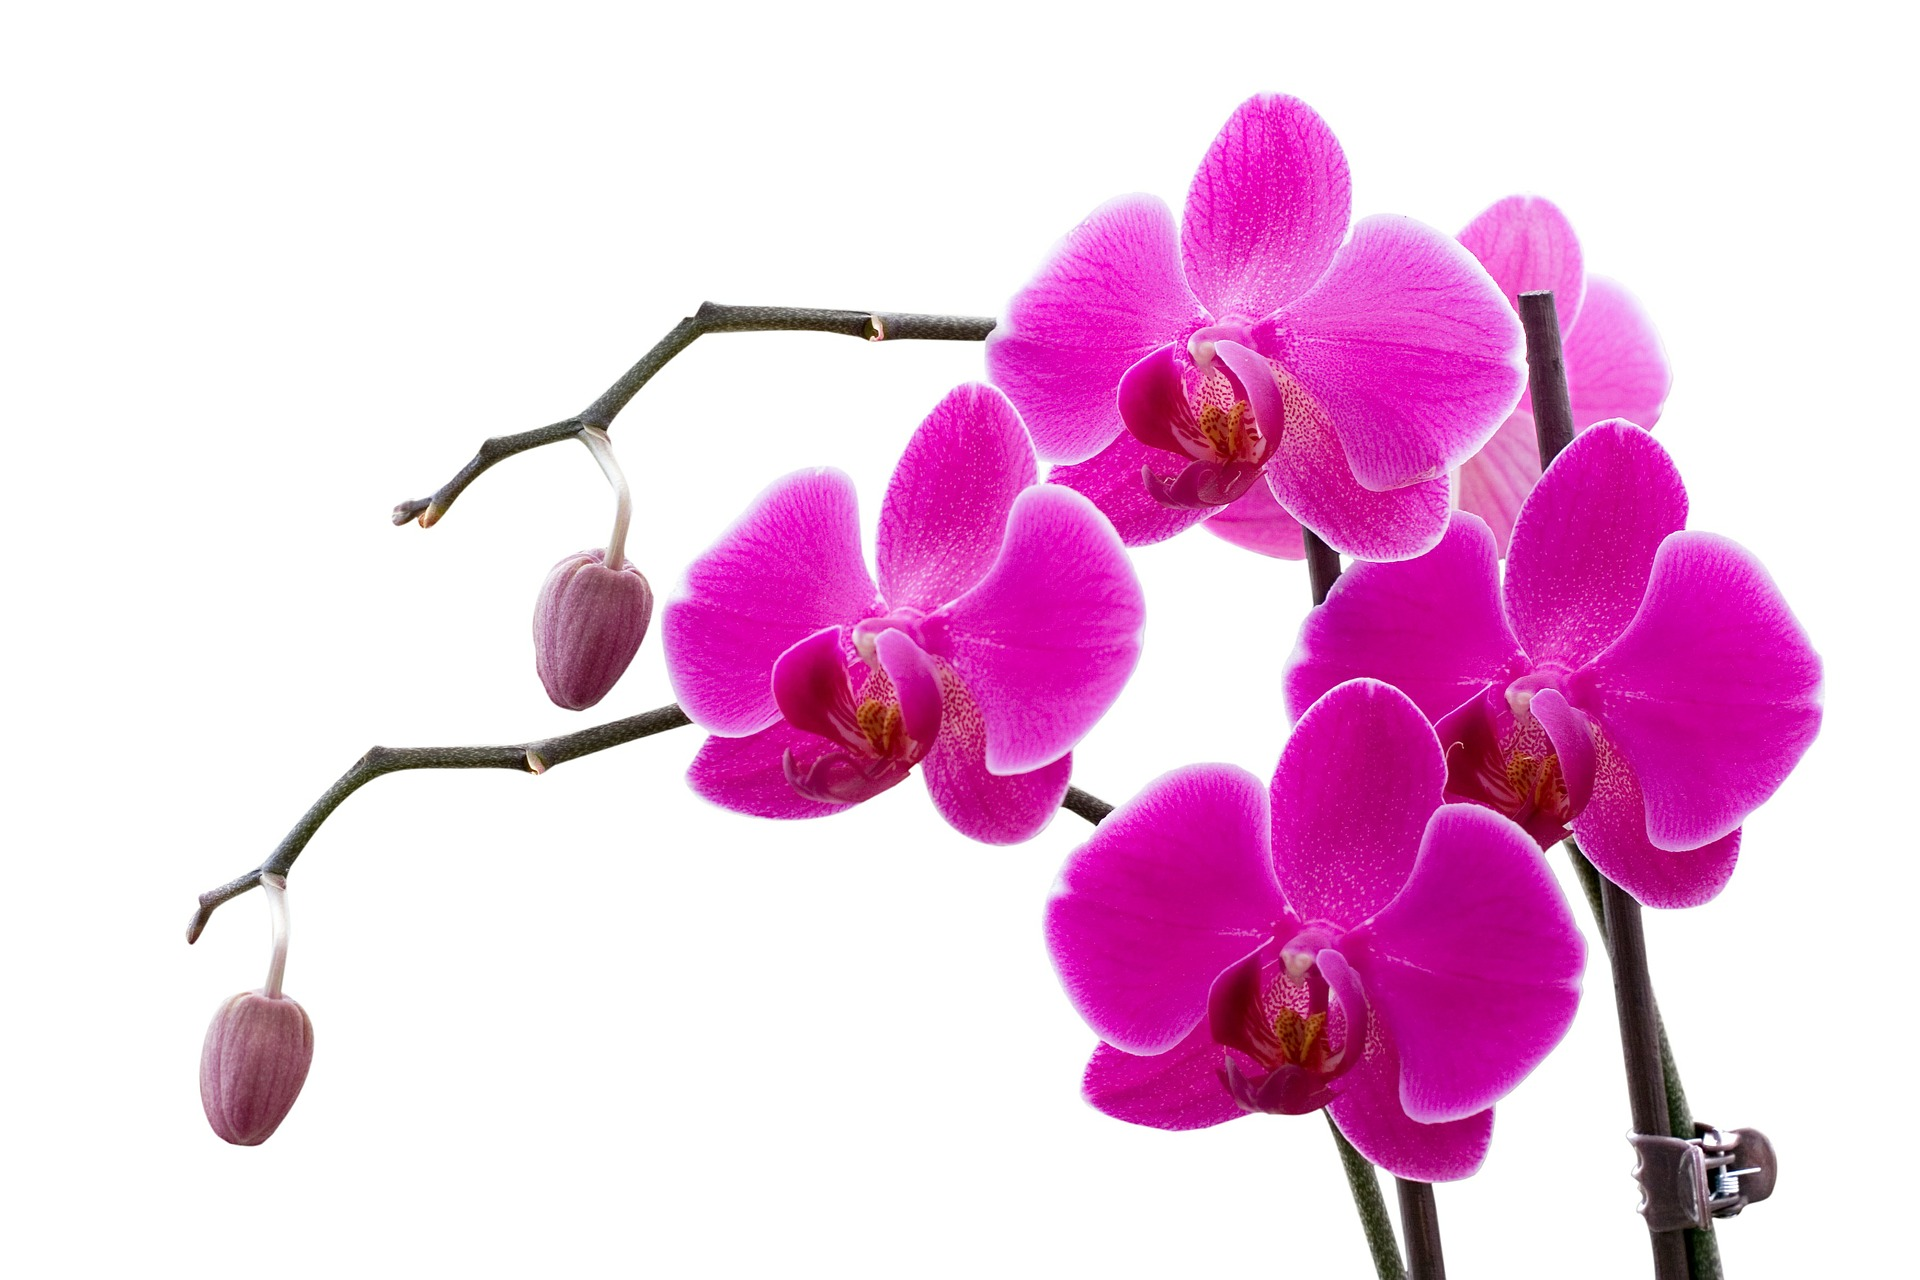 orchid-622481_1920